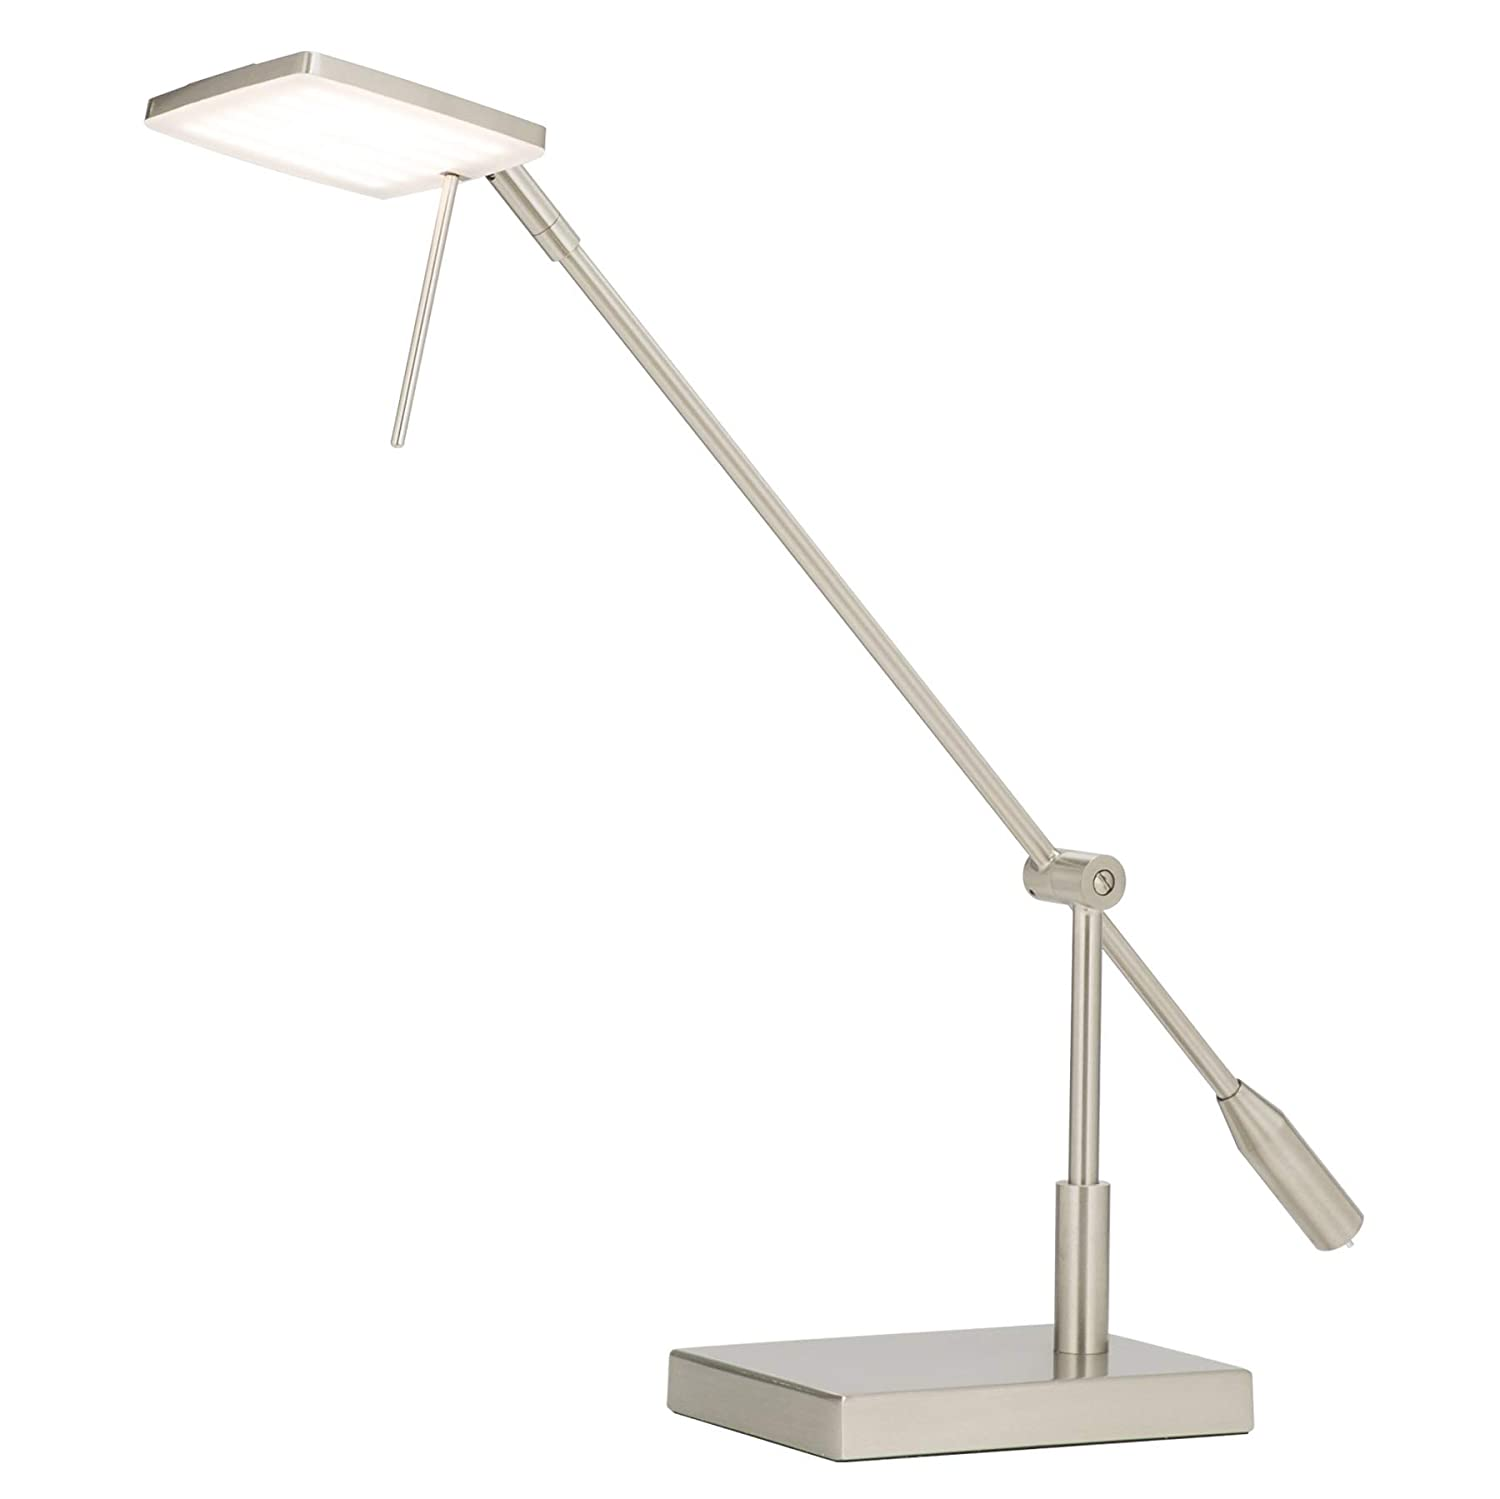 CO-Z Dimmable Brushed Nickel LED Desk Lamp with Adjustable Head, LED Task Light for Office Working Home Bedroom School Study Writing Computer Lighting, Pharmacy-Style Inspired Modern Metal Desk Lamp